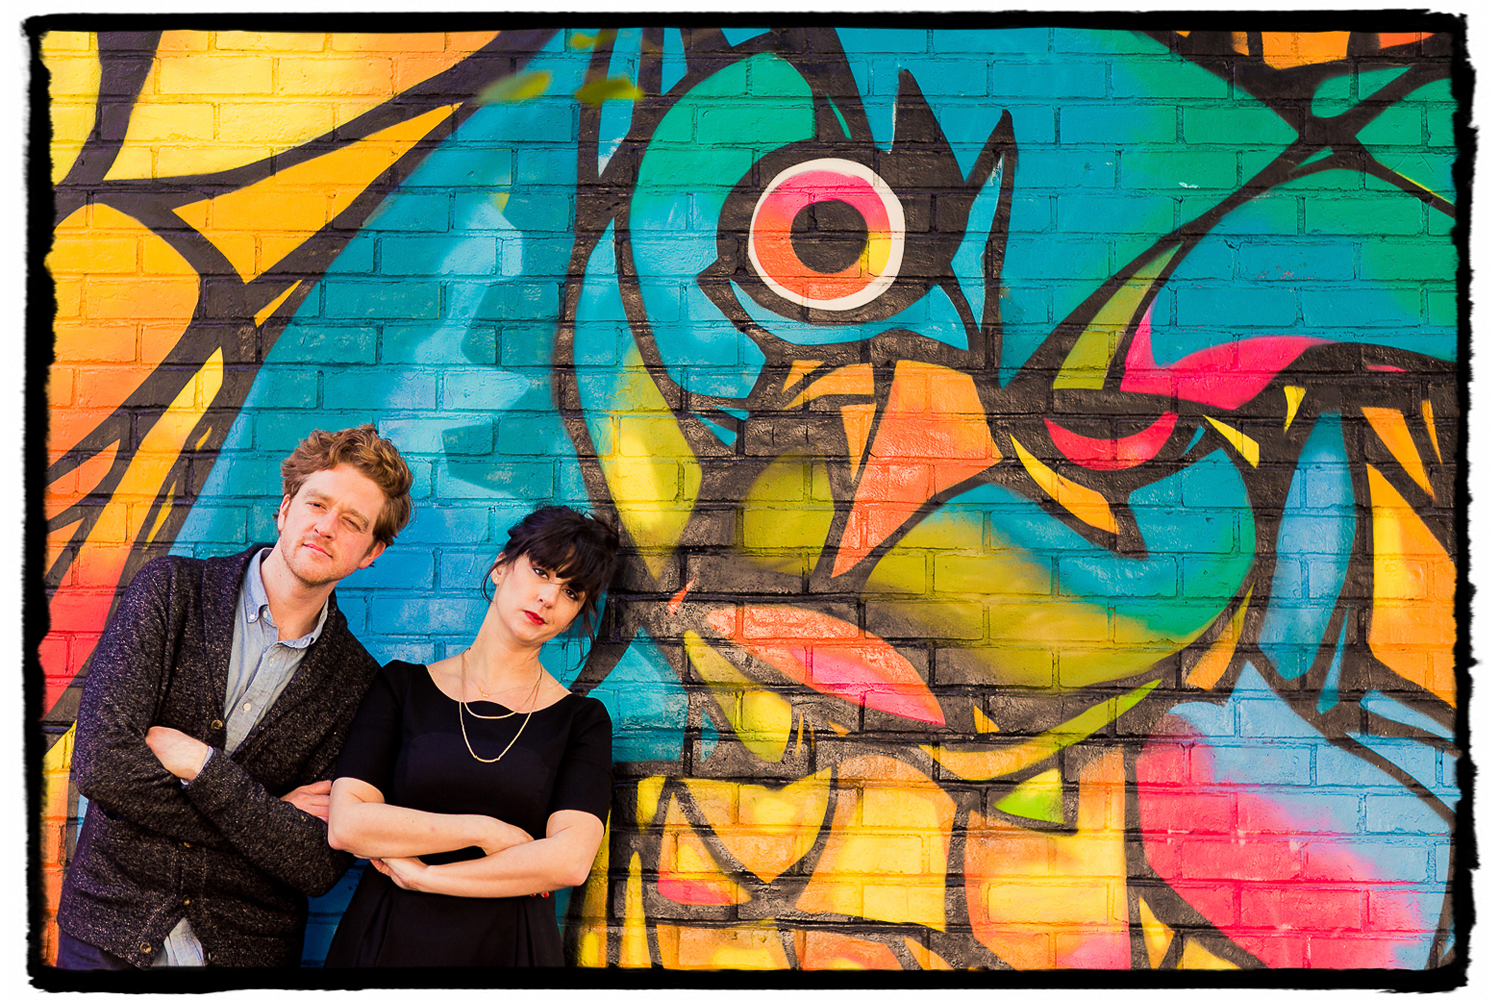 Engagement Portraits: Alli & Parker make funny faces with the street art in DUMBO.